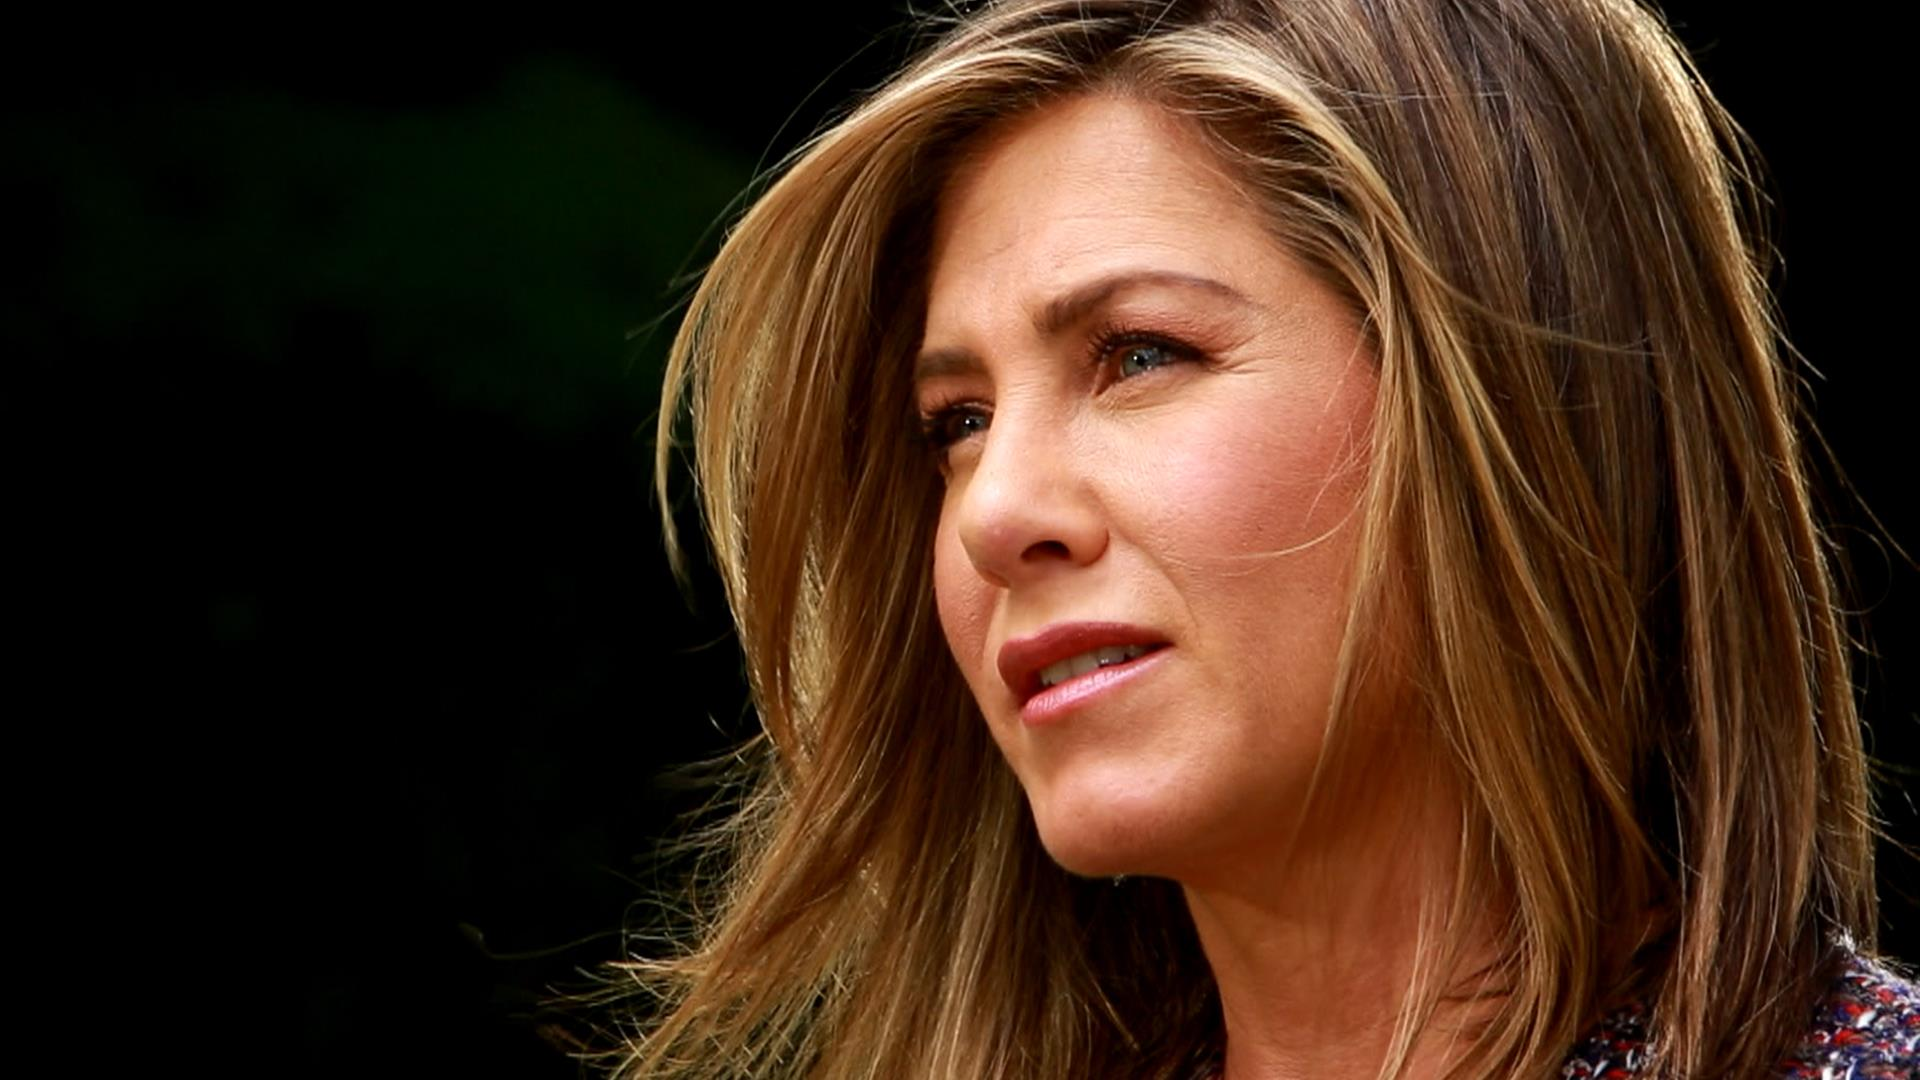 Jennifer Aniston: Jennifer Aniston To Tabloids: I'm Not Pregnant, I'm Fed Up